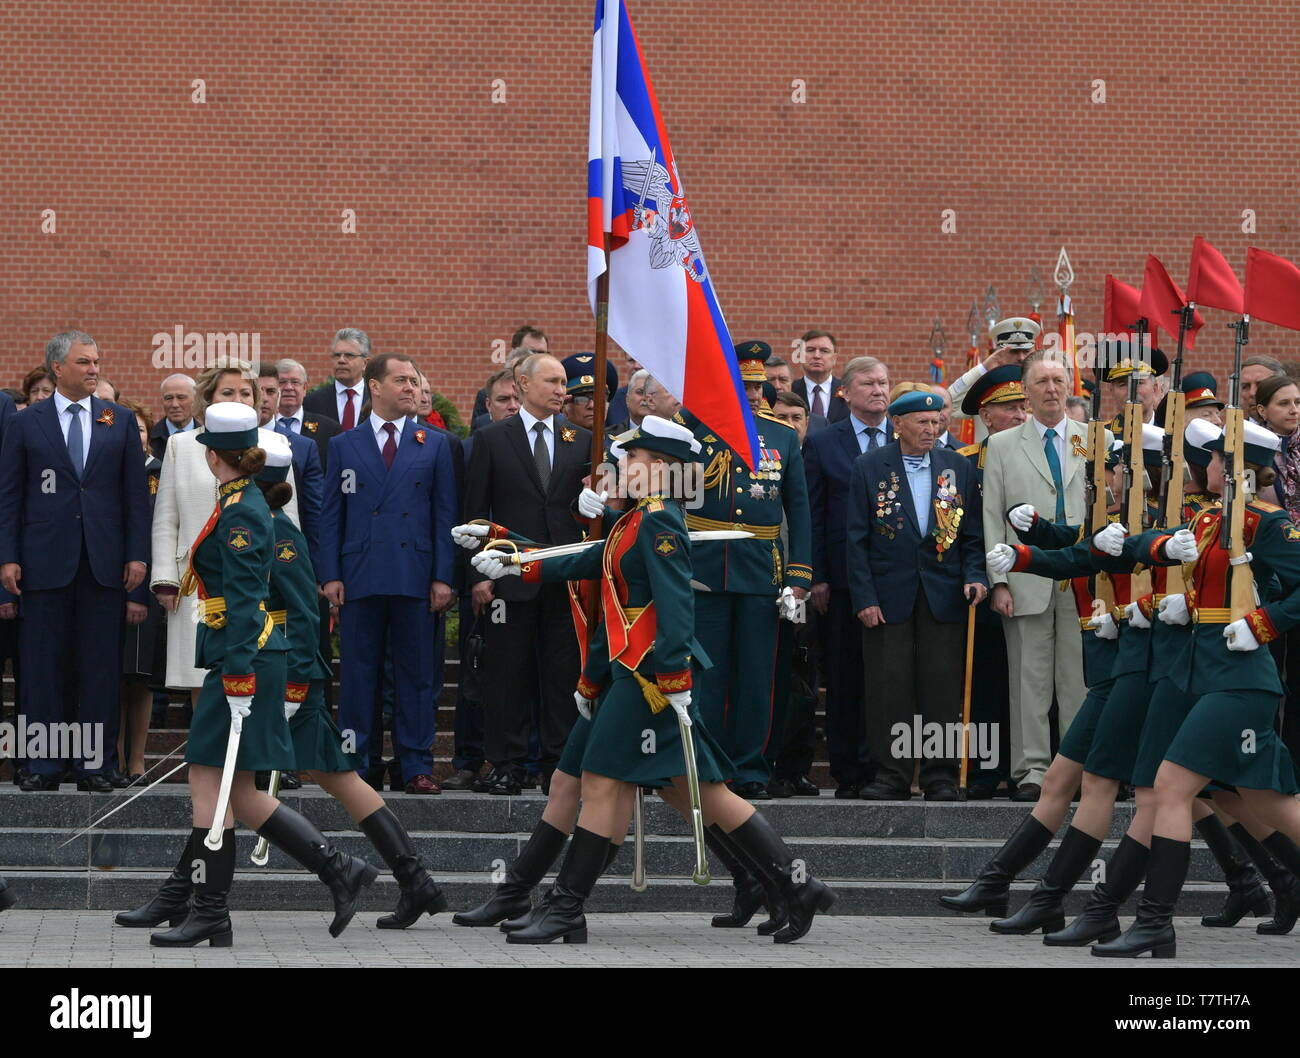 MOSCOW, RUSSIA - MAY 9, 2019: Russian State Duma Chairman Vyacheslav Volodin, Russian Federation Council Chairwoman Valentina Matviyenko, Russia's Prime Minister Dmitry Medvedev, Russia's President Vladimir Putin, Russia's Defence Minister Sergei Shoigu (L-R back) during a ceremony to lay flowers at the Tomb of the Unknown Soldier by the Kremlin Wall during celebrations marking the 74th anniversary of the victory of the Soviet Red Army over Nazi Germany in the Great Patriotic War of 1941-45, the Eastern Front of the Second World War. Alexei Druzhinin/Russian Presidential Press and Information - Stock Image